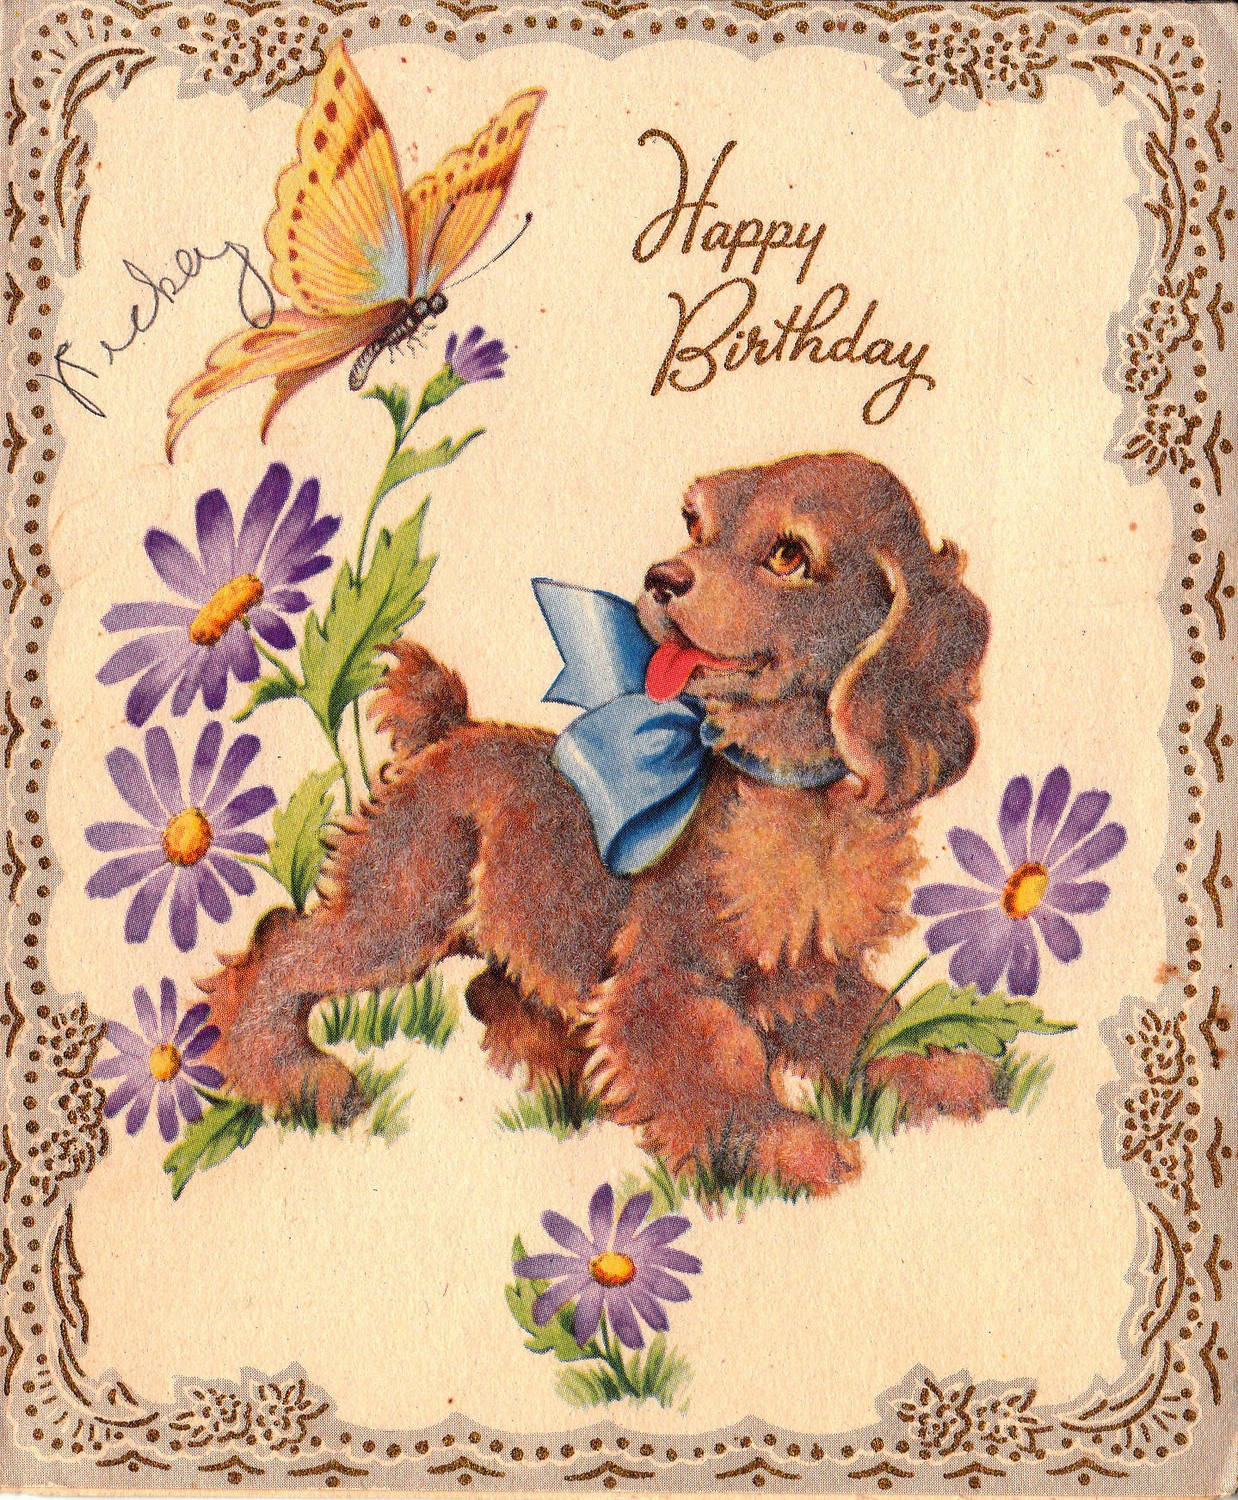 Free vintage puppy birthday card free vintage illustrations free birthday clipart and vintage illustrations 1238 1500 bookmarktalkfo Image collections